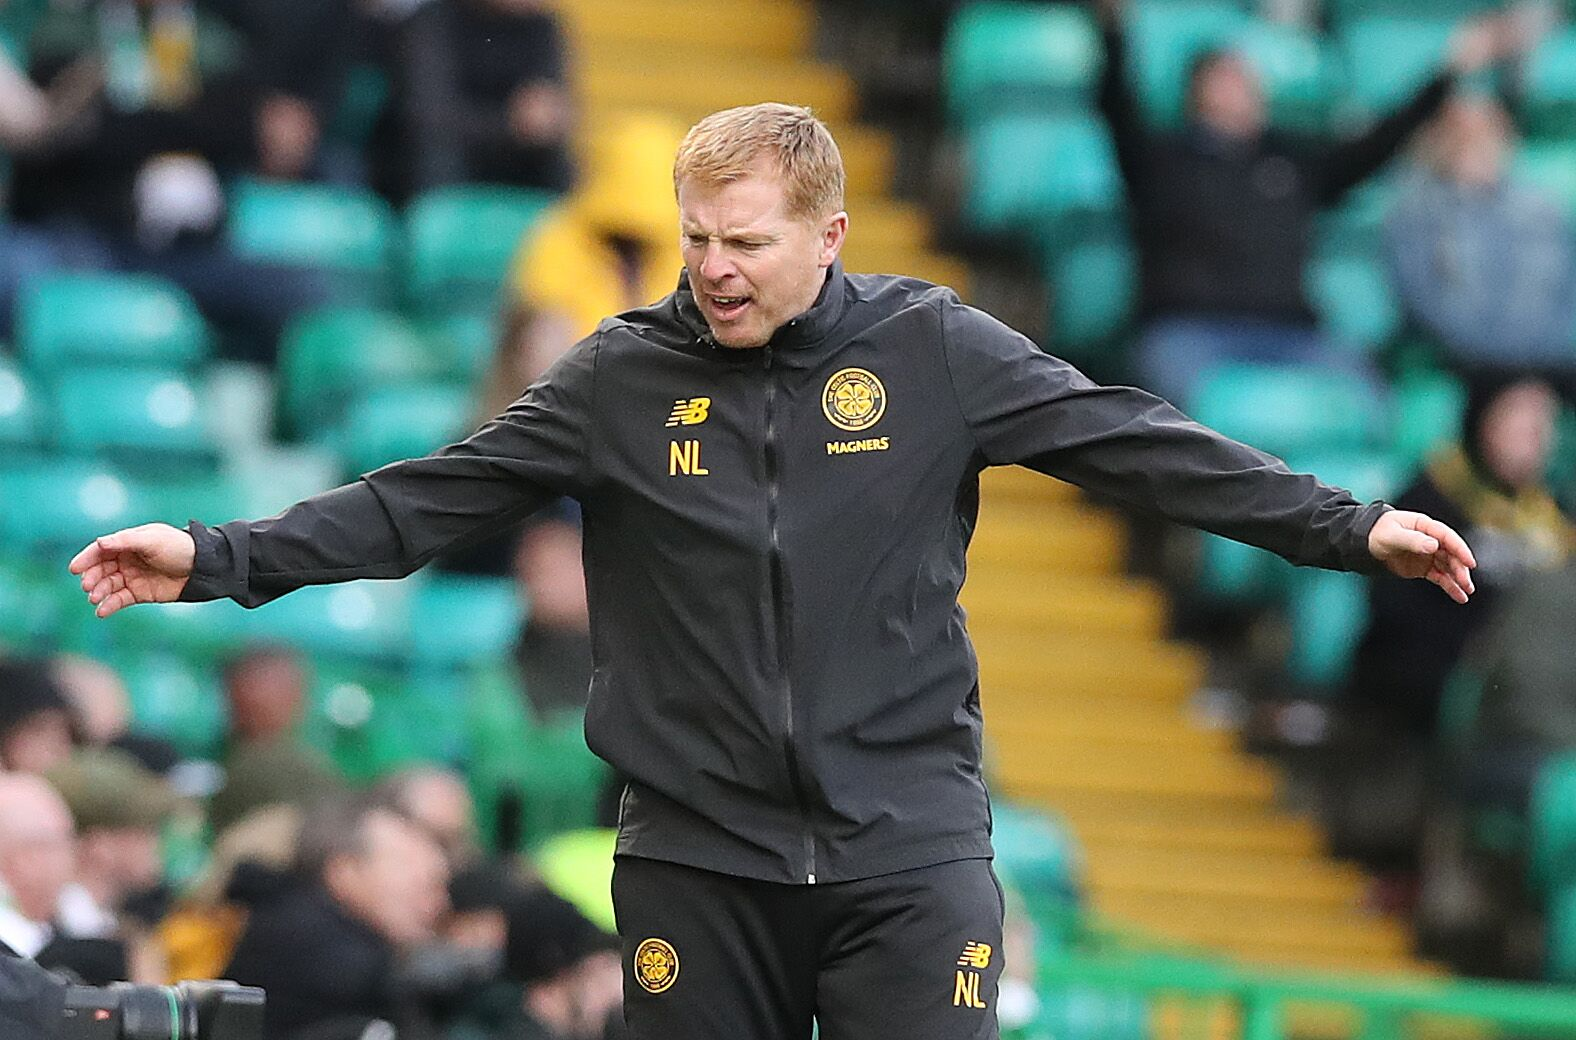 Celtic injury blow, Lennon confirms striker is out of Rennes clash